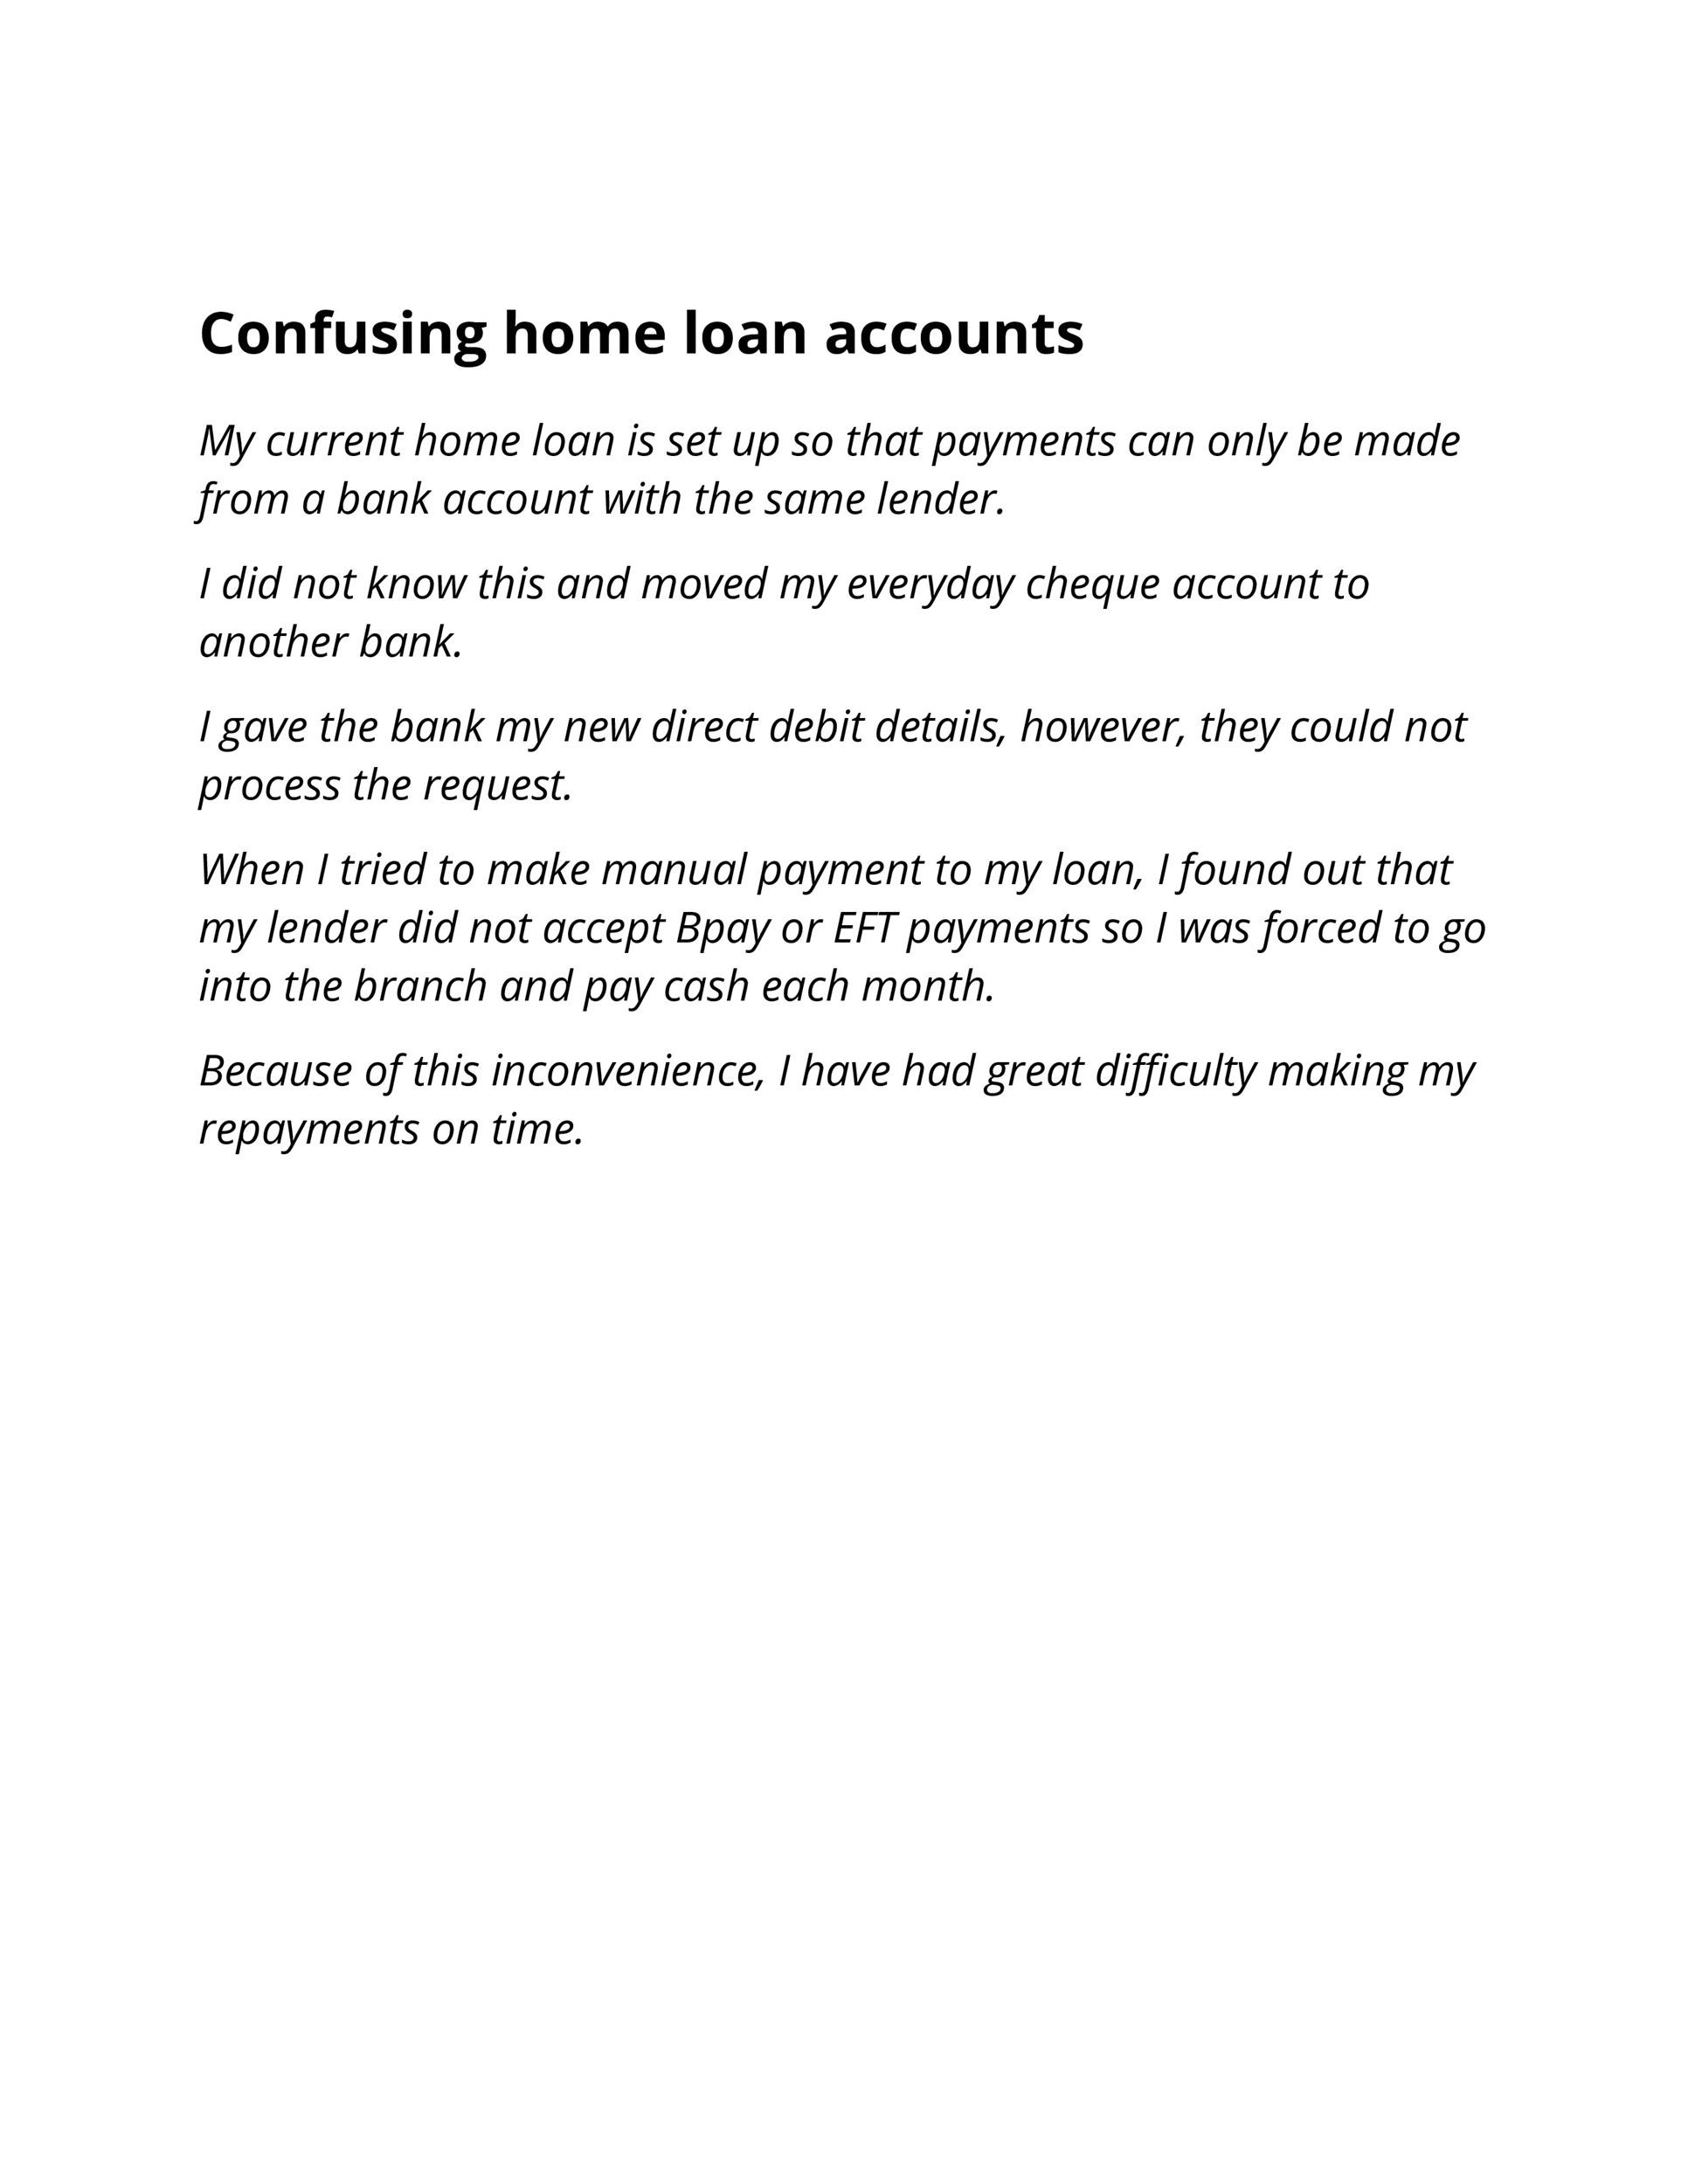 Sample Letter Of Explanation (Lox) For Refinance Cash Out from templatelab.com